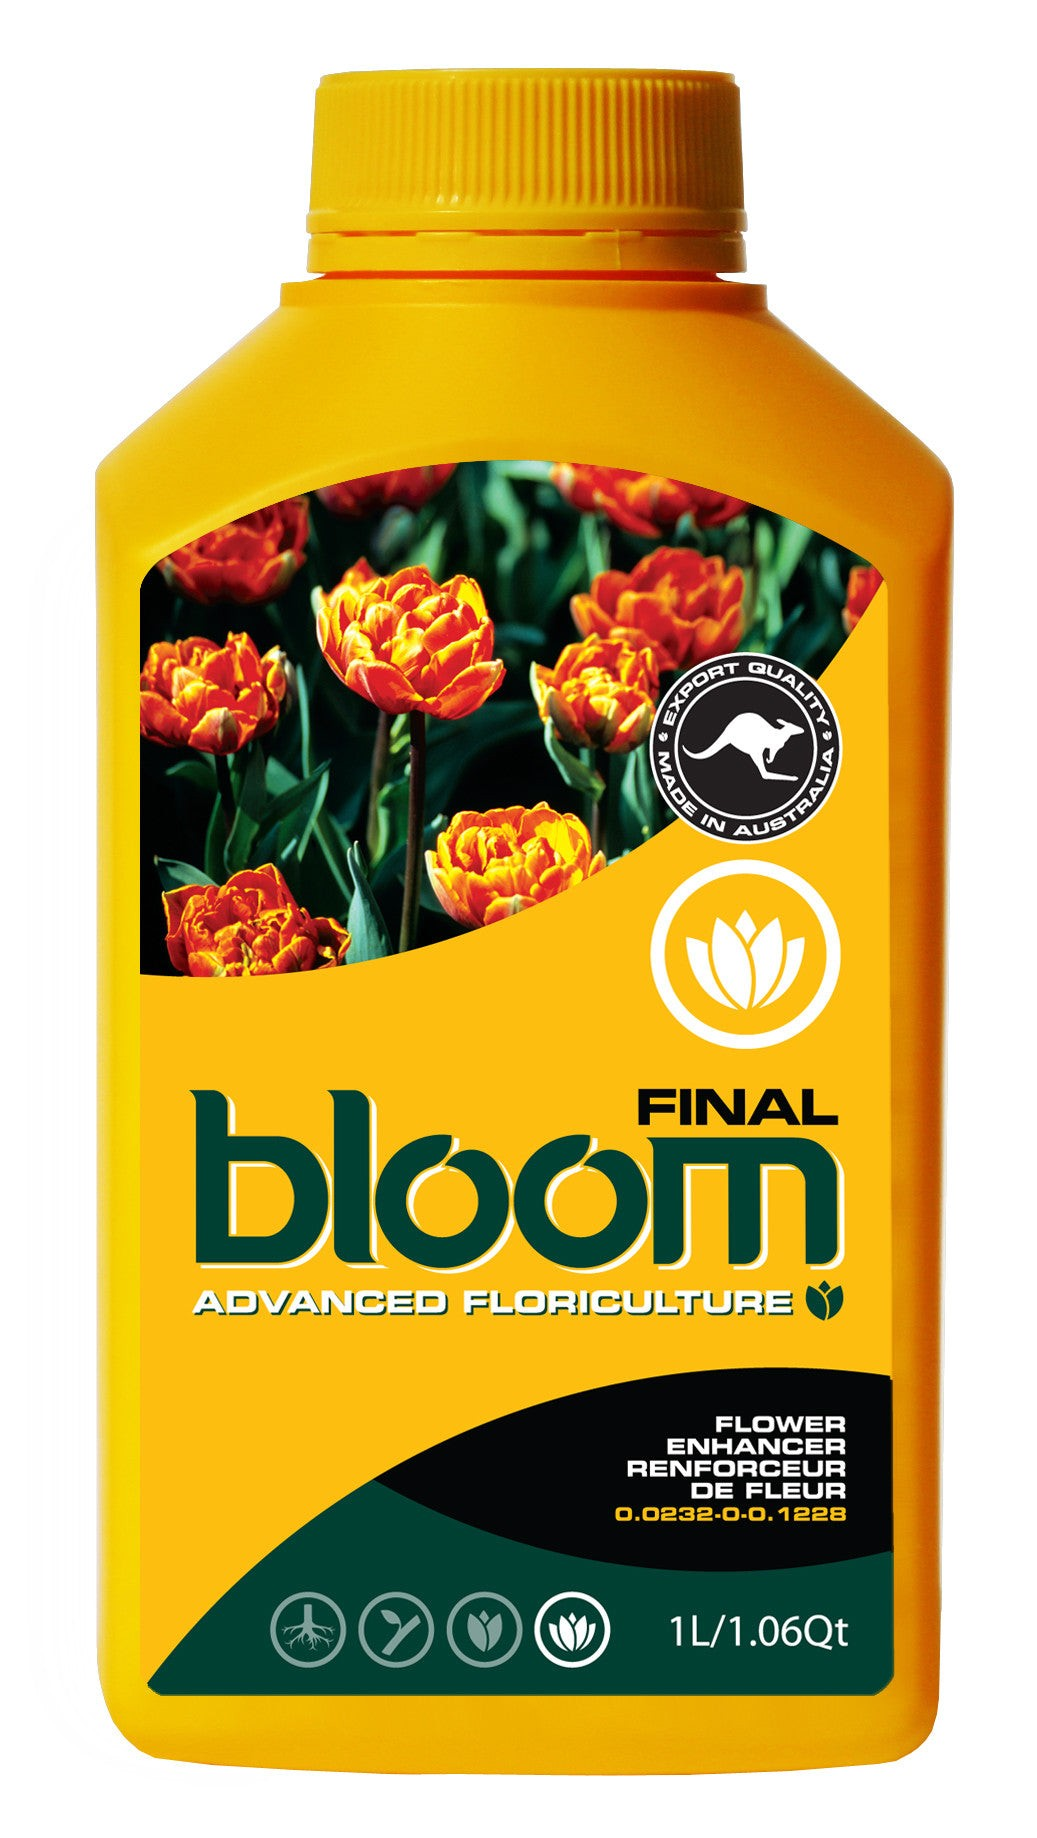 Advanced Floriculture Bloom FINAL 2.5 Liter Advanced Floriculture Yellow Bottle